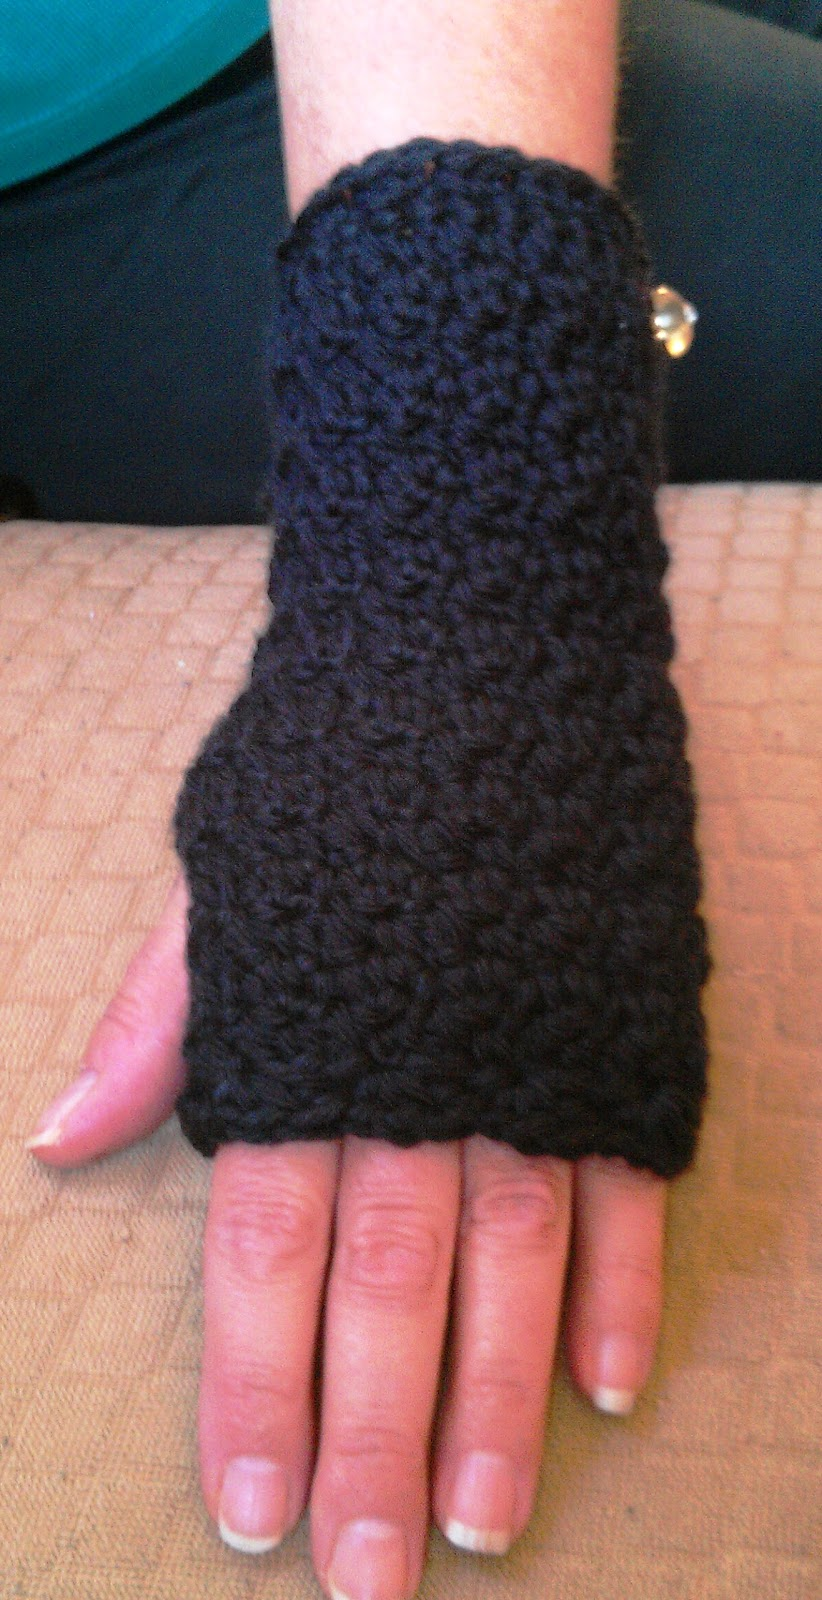 Hand Crochet : Cute Crochet Chat: New Crochet Hand/Wrist Warmers Pattern